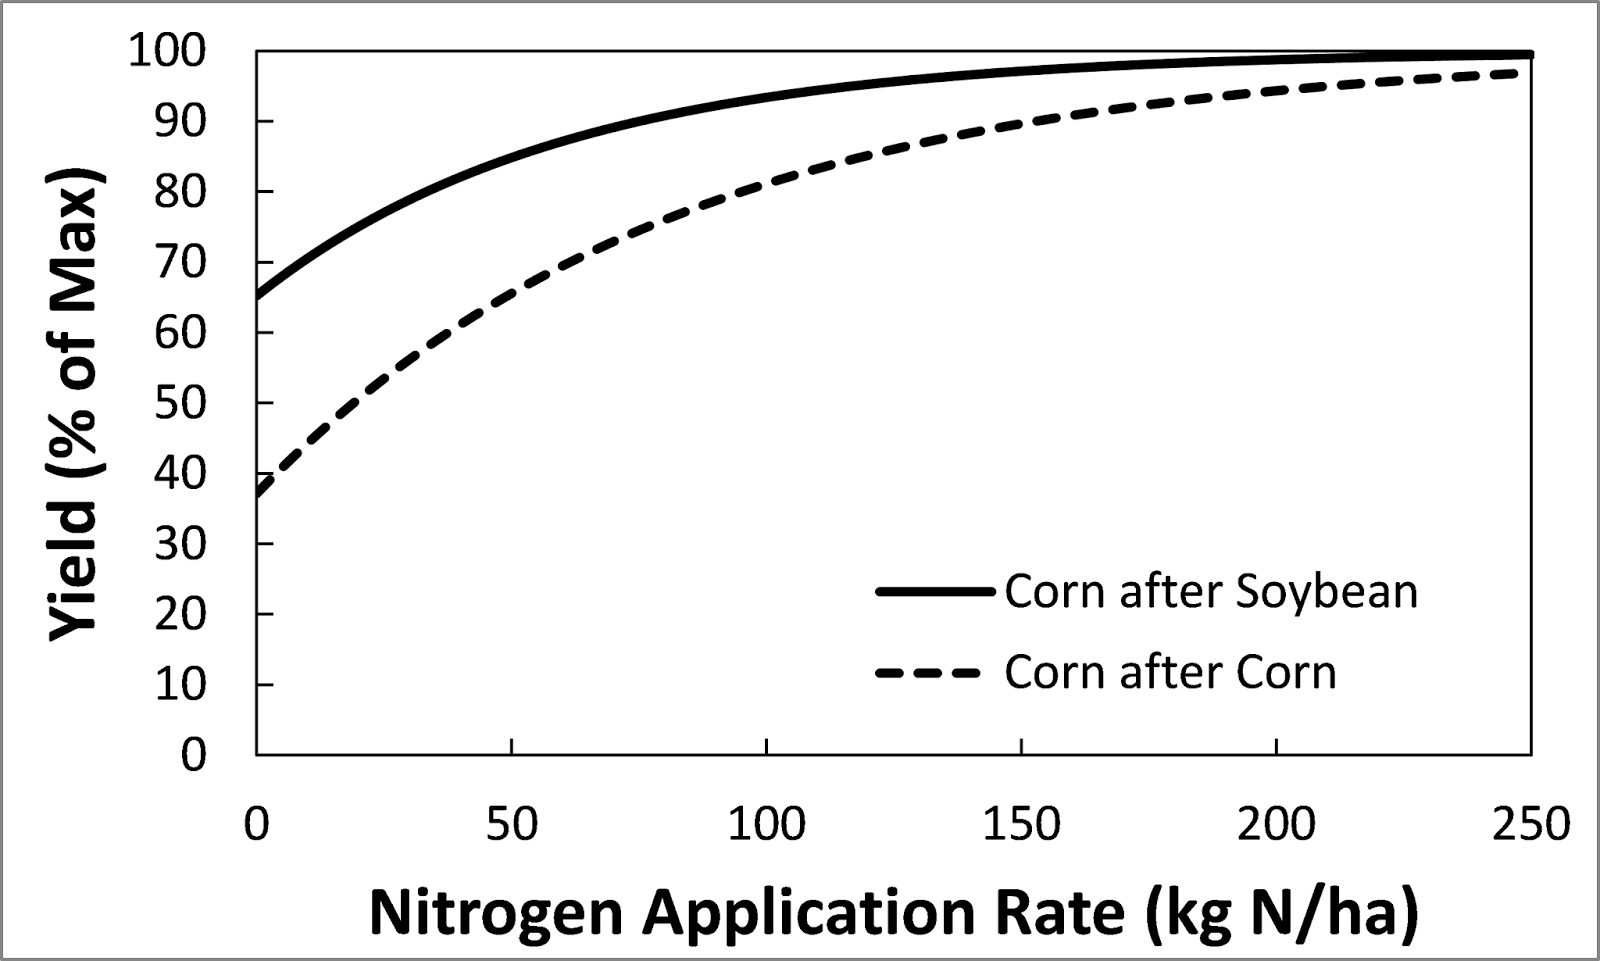 medium resolution of  state or fertilizer region you are in and the program generates an estimate of what fertilizer rate will give you your maximum return to nitrogen